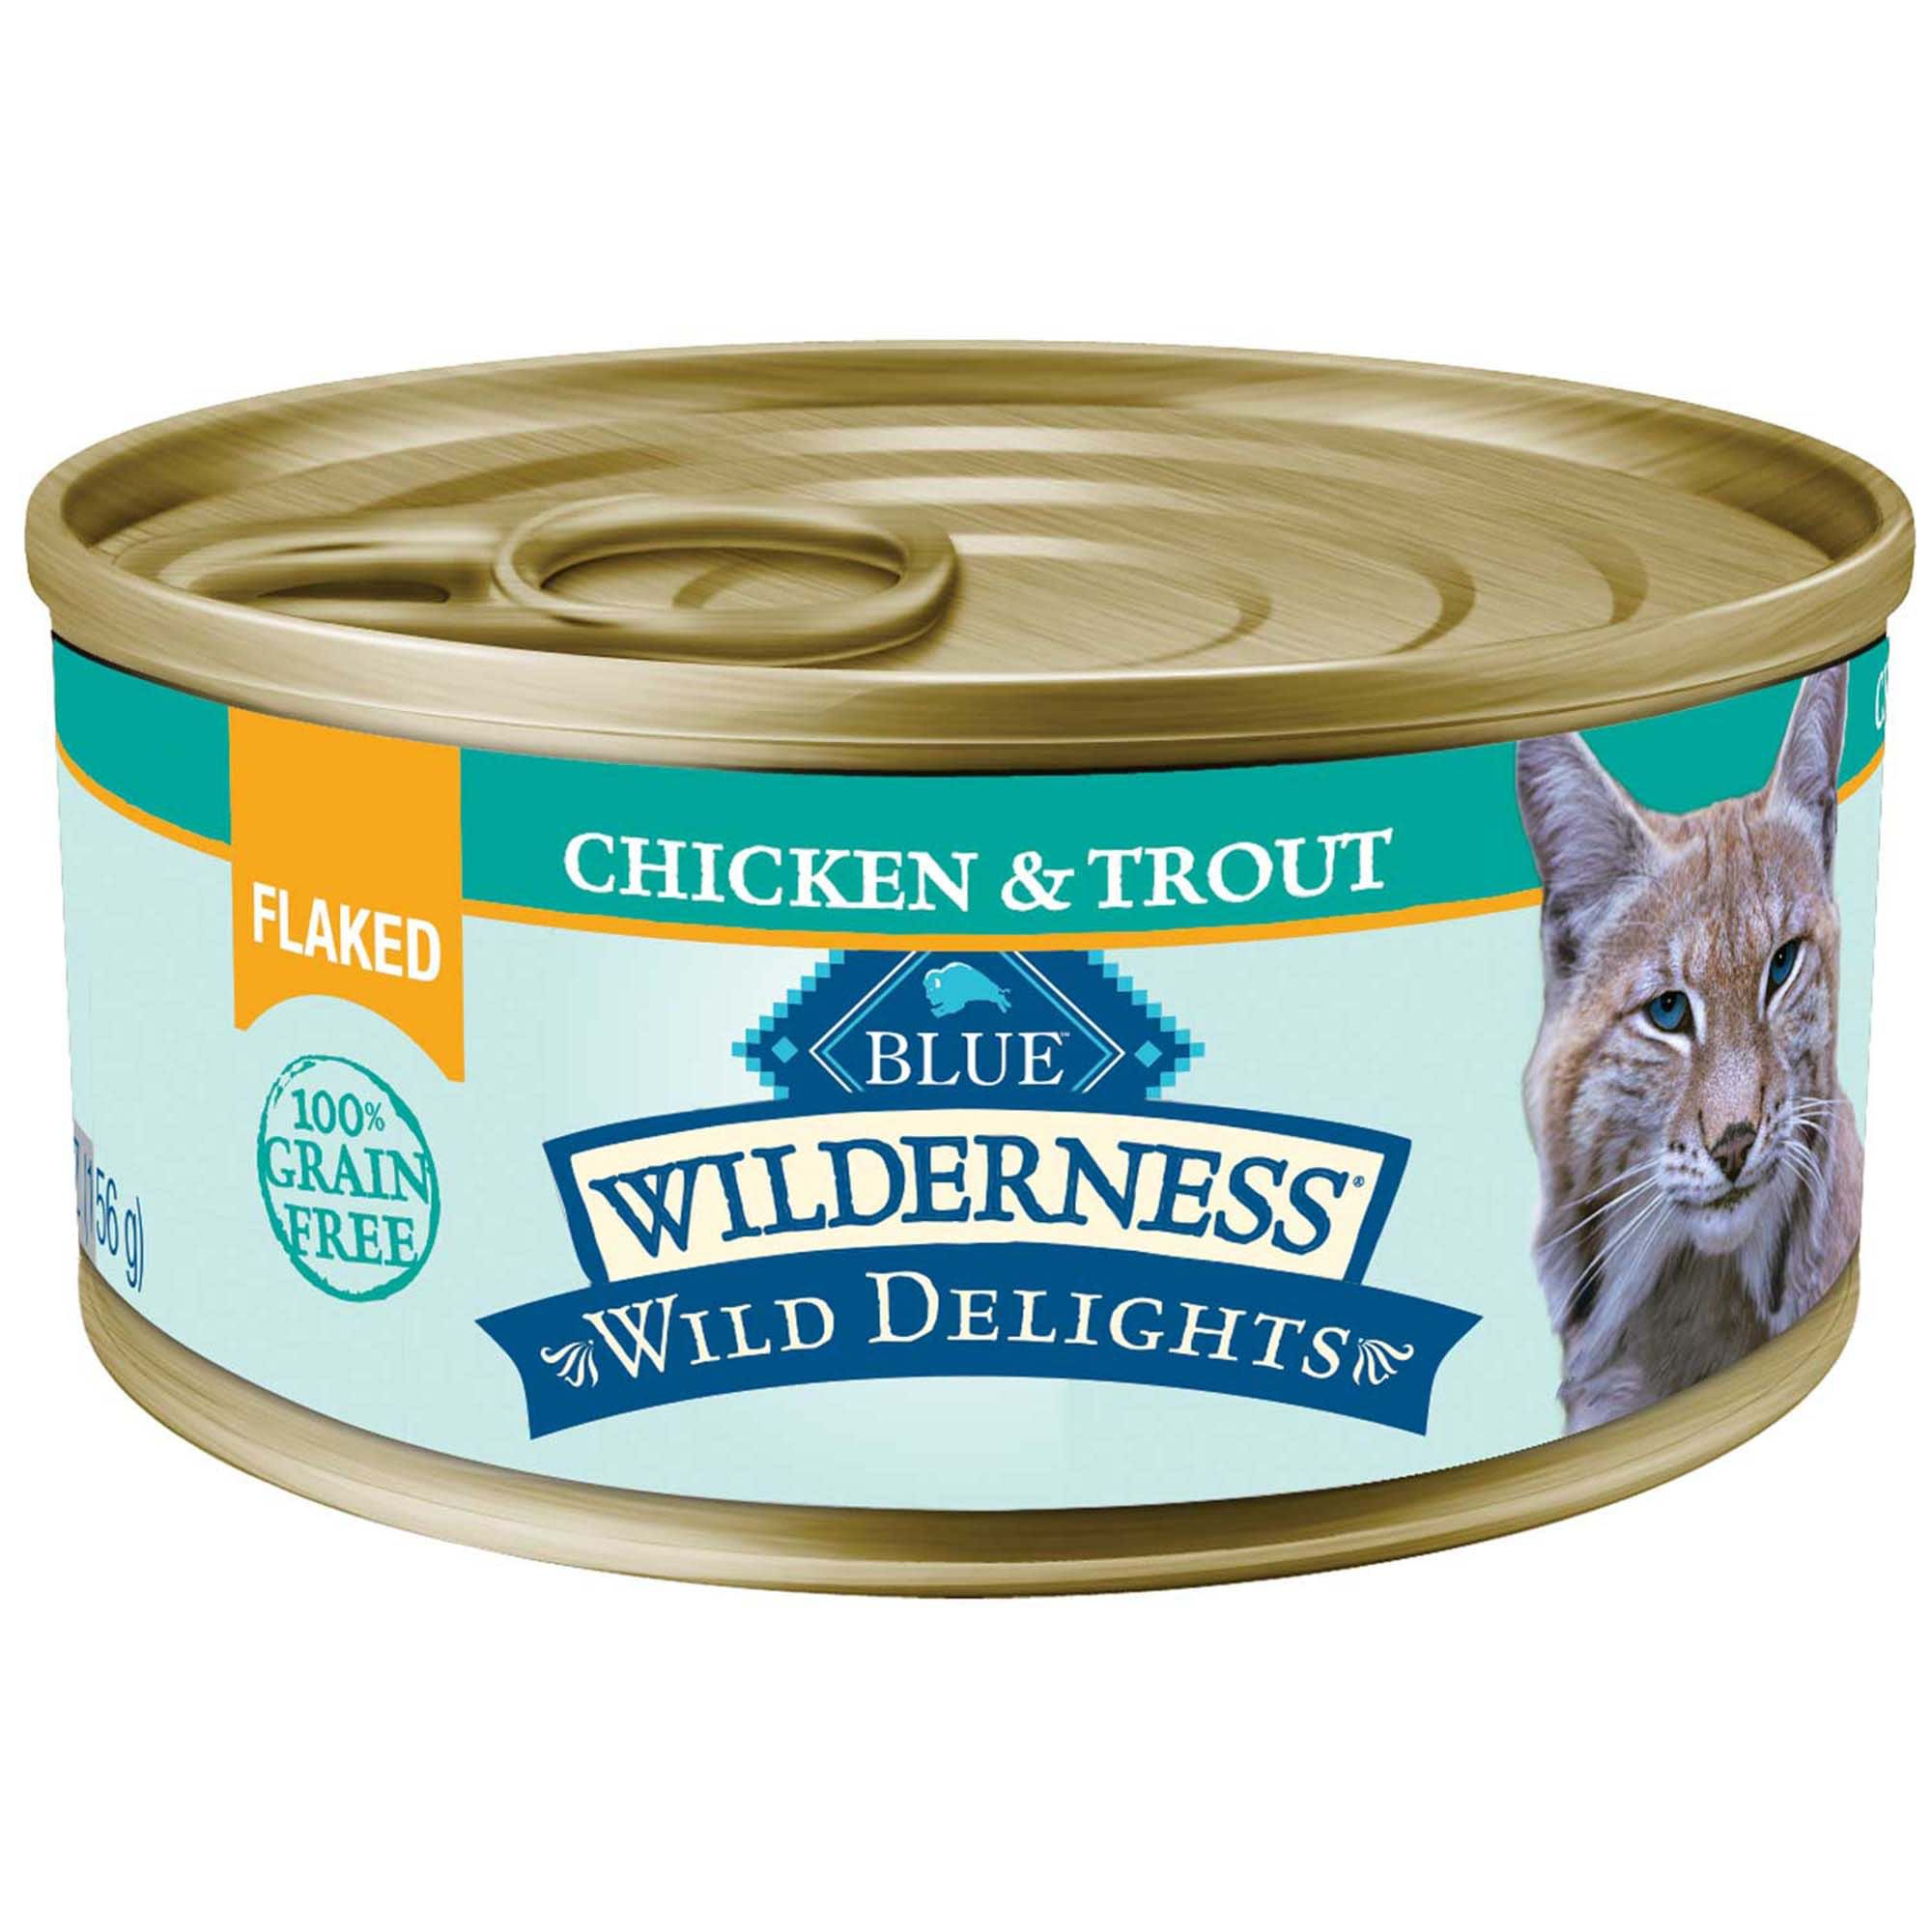 Blue Buffalo Blue Wilderness Wild Delights Flaked Chicken Trout Recipe Wet Cat Food 5 5 Oz Case Of 24 24 X 5 5 Oz In 2020 Canned Cat Food Trout Recipes Cat Food